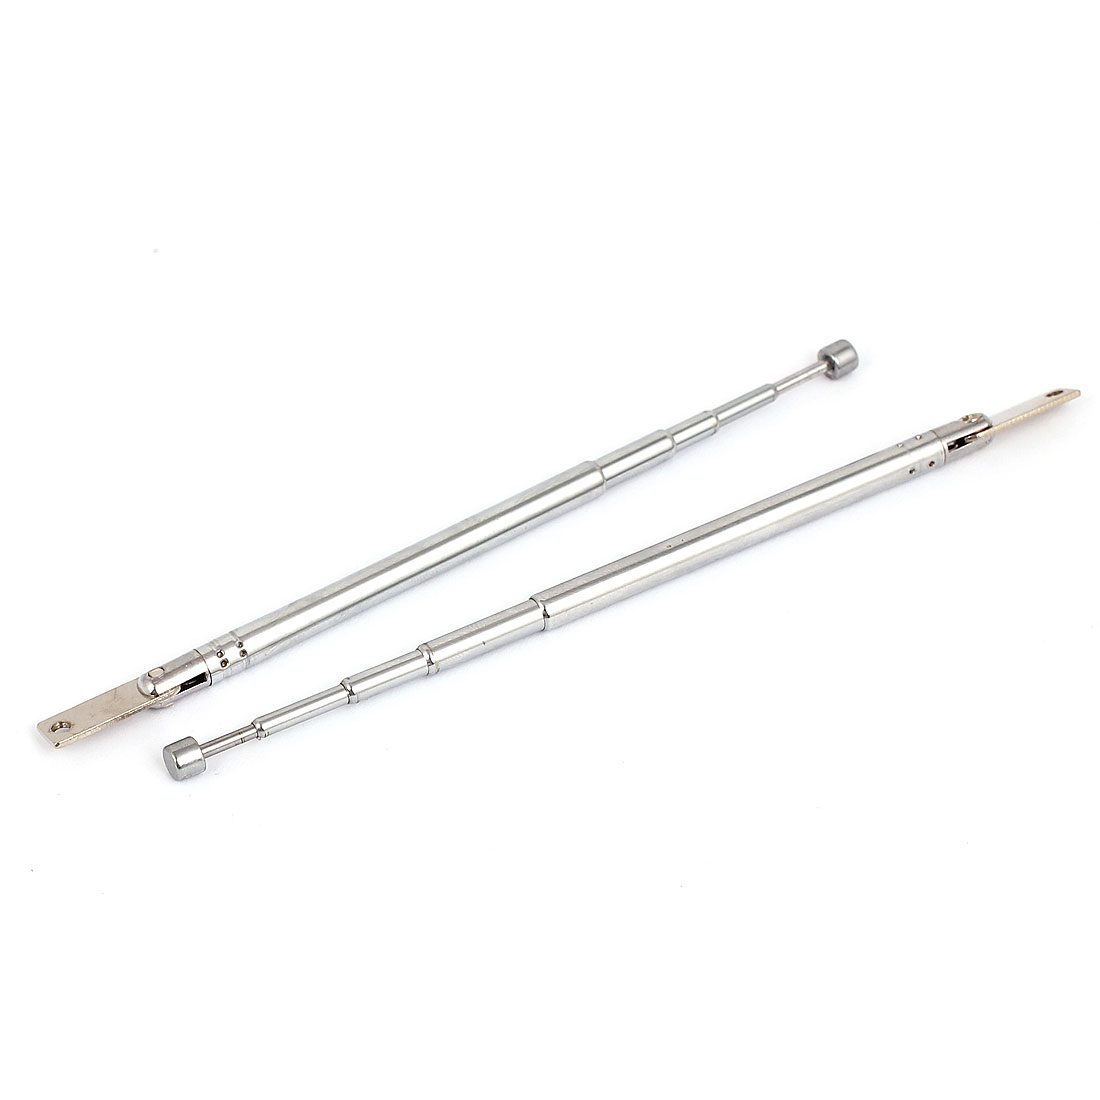 2pcs 27cm Length 5 Sections Telescopic Antenna Aerial Mast for TV RC Controller